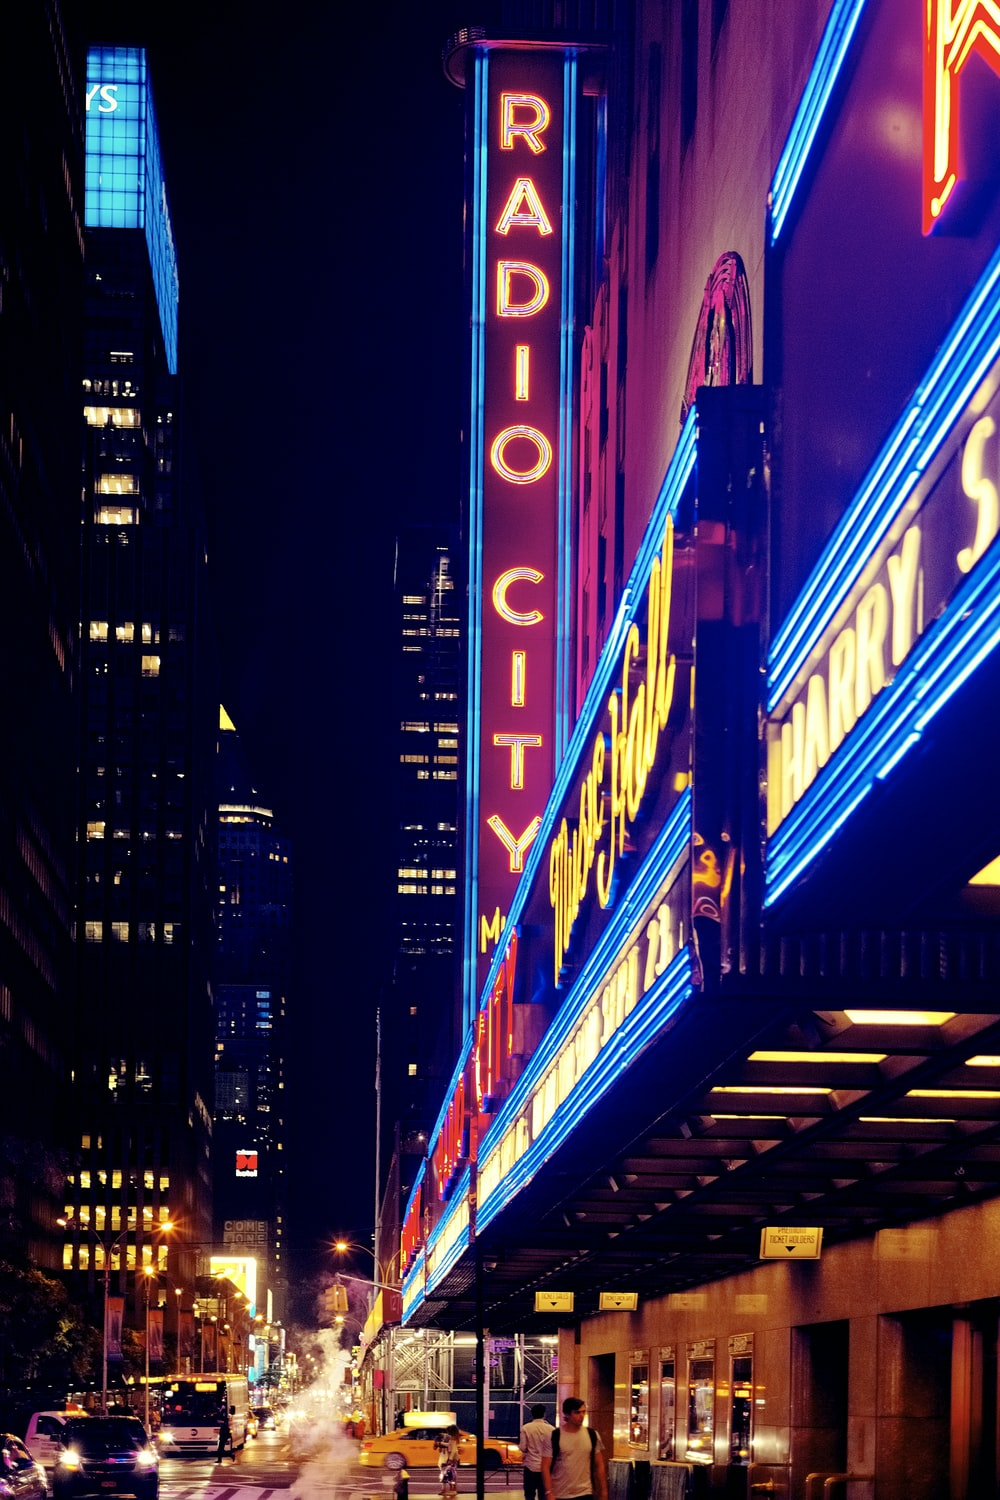 inlighted Radio City signage